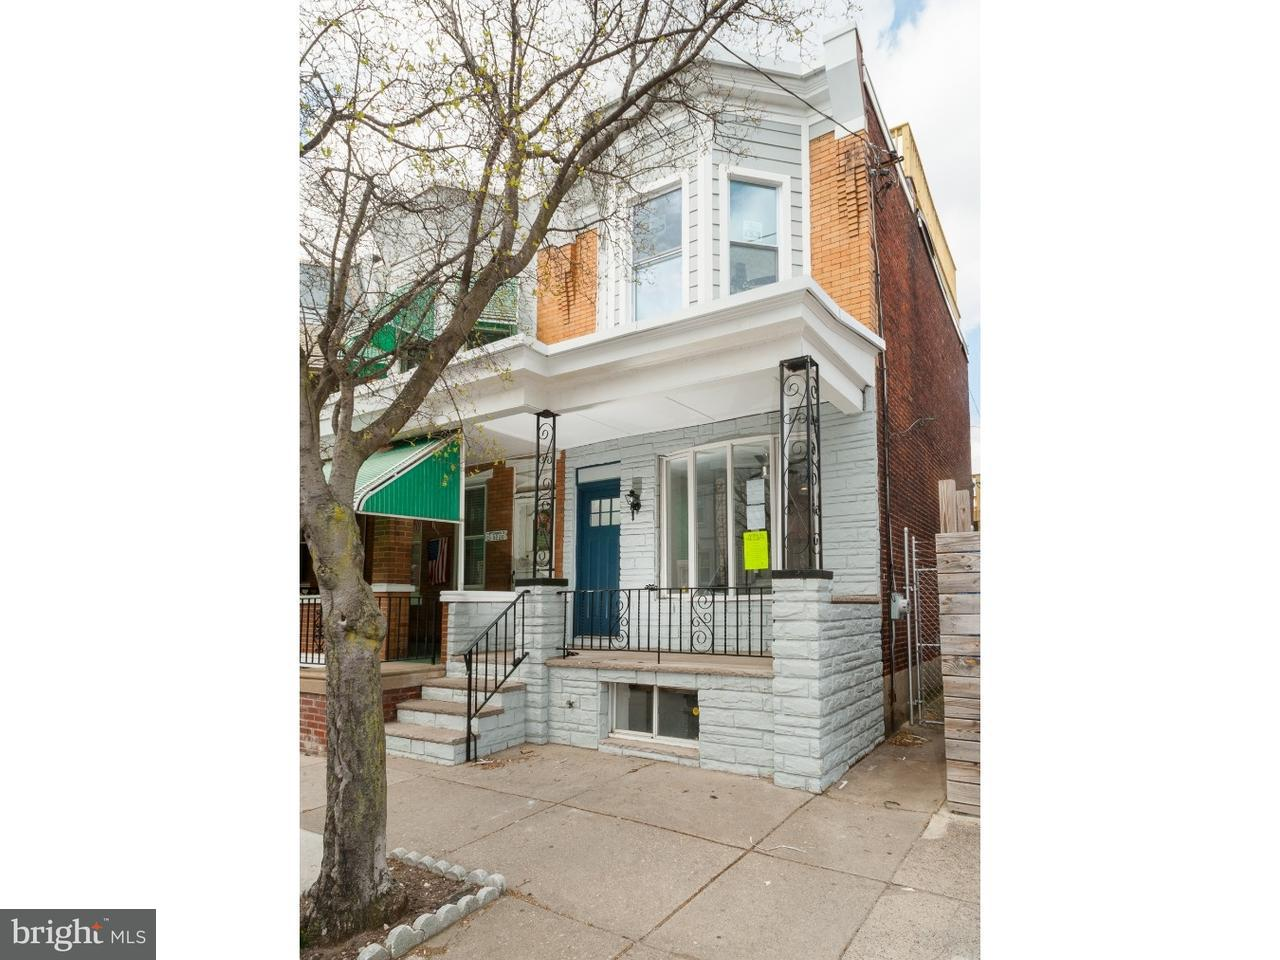 3282 E Thompson Street Philadelphia, PA 19134